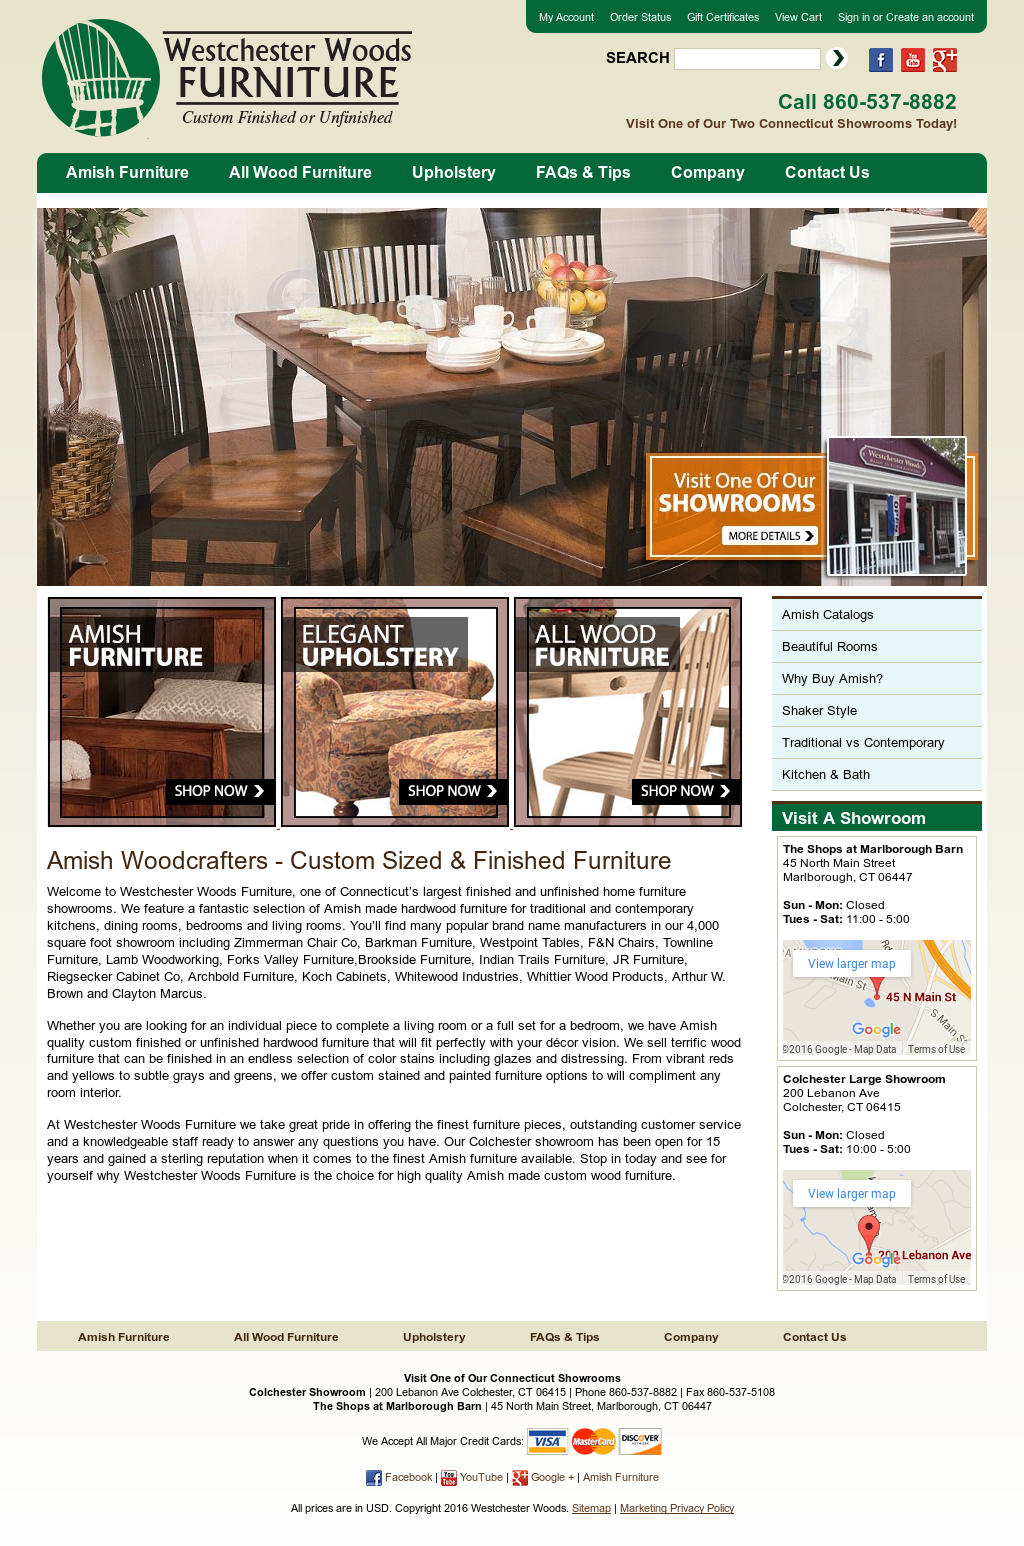 Superieur Westchester Woods Furniture Competitors, Revenue And ...